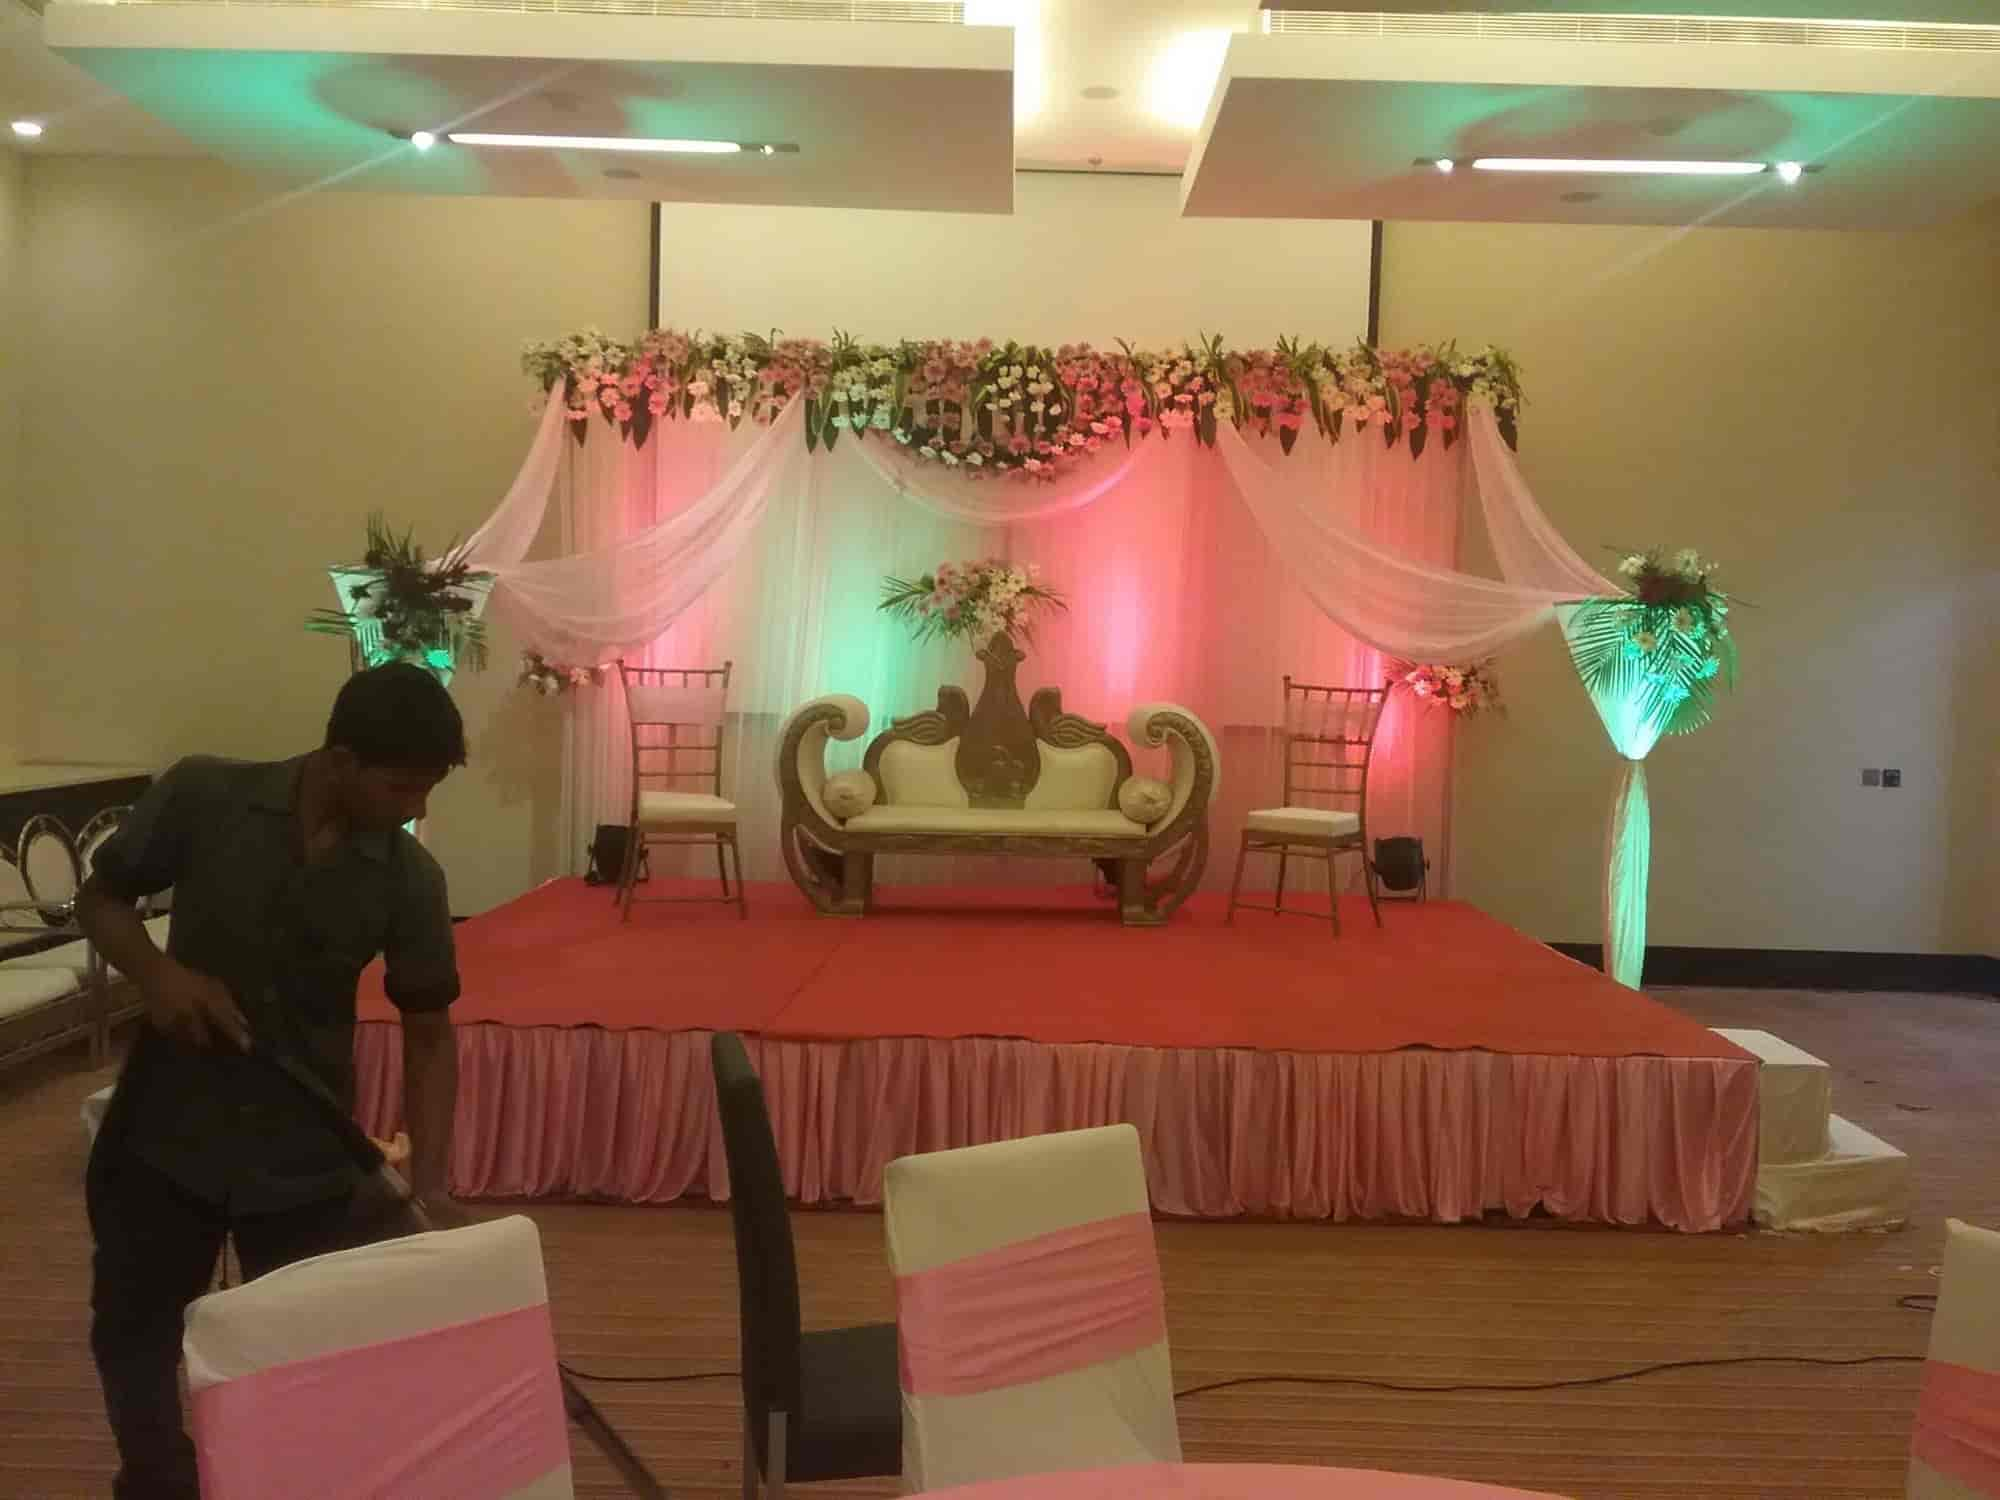 Gm events wedding planner photos gurgaon sector 9 delhi pictures wedding decoration gm events wedding planner photos gurgaon sector 9 junglespirit Choice Image